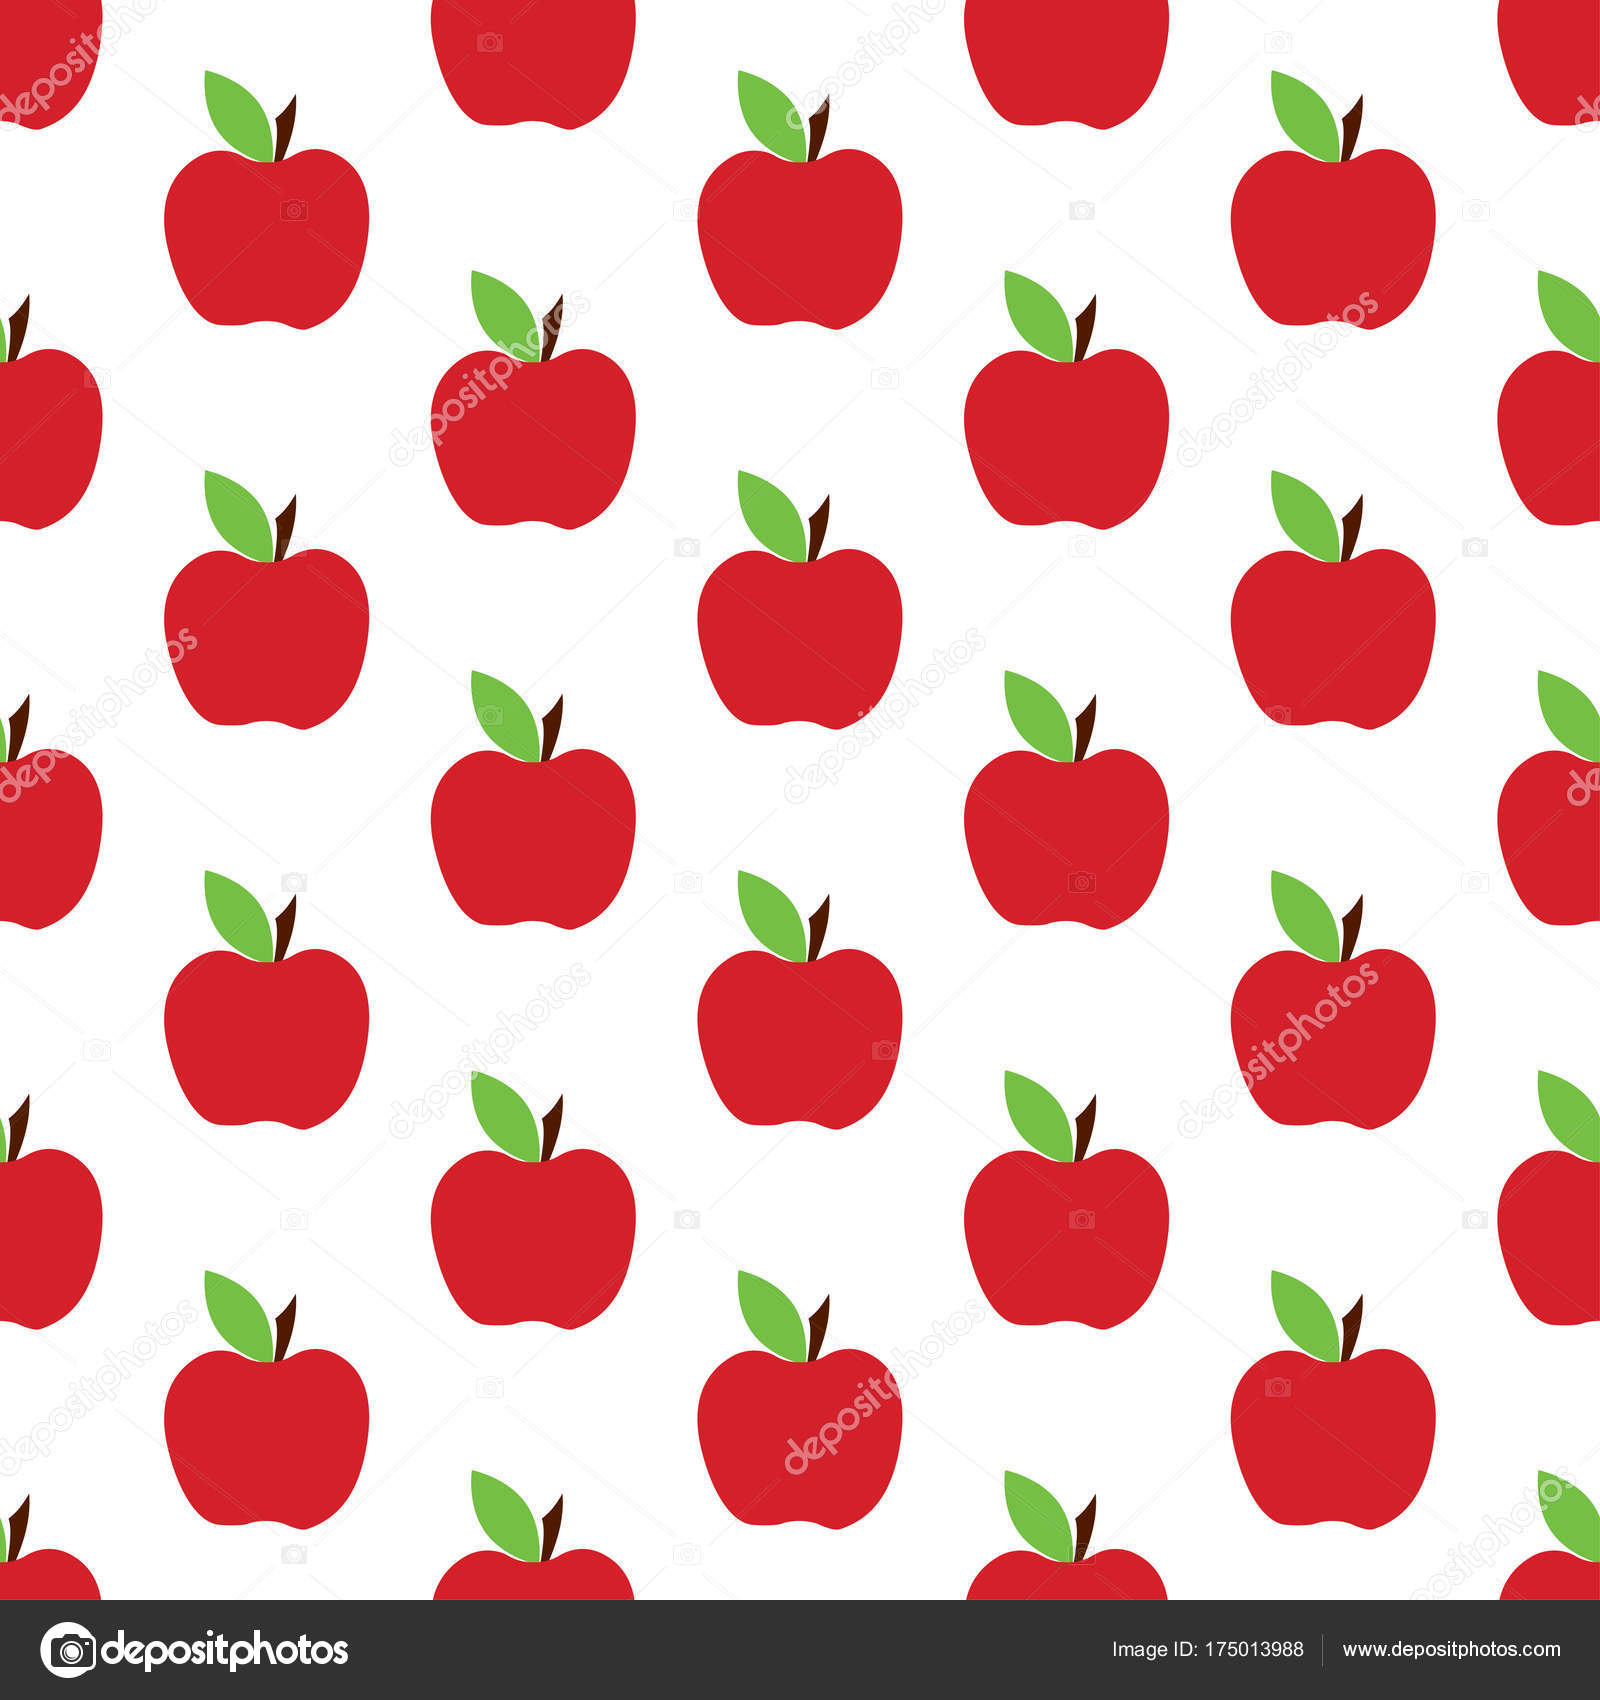 Beautiful Wallpaper Macbook Pattern - depositphotos_175013988-stock-illustration-apple-pattern-on-the-white  Picture_782213.jpg